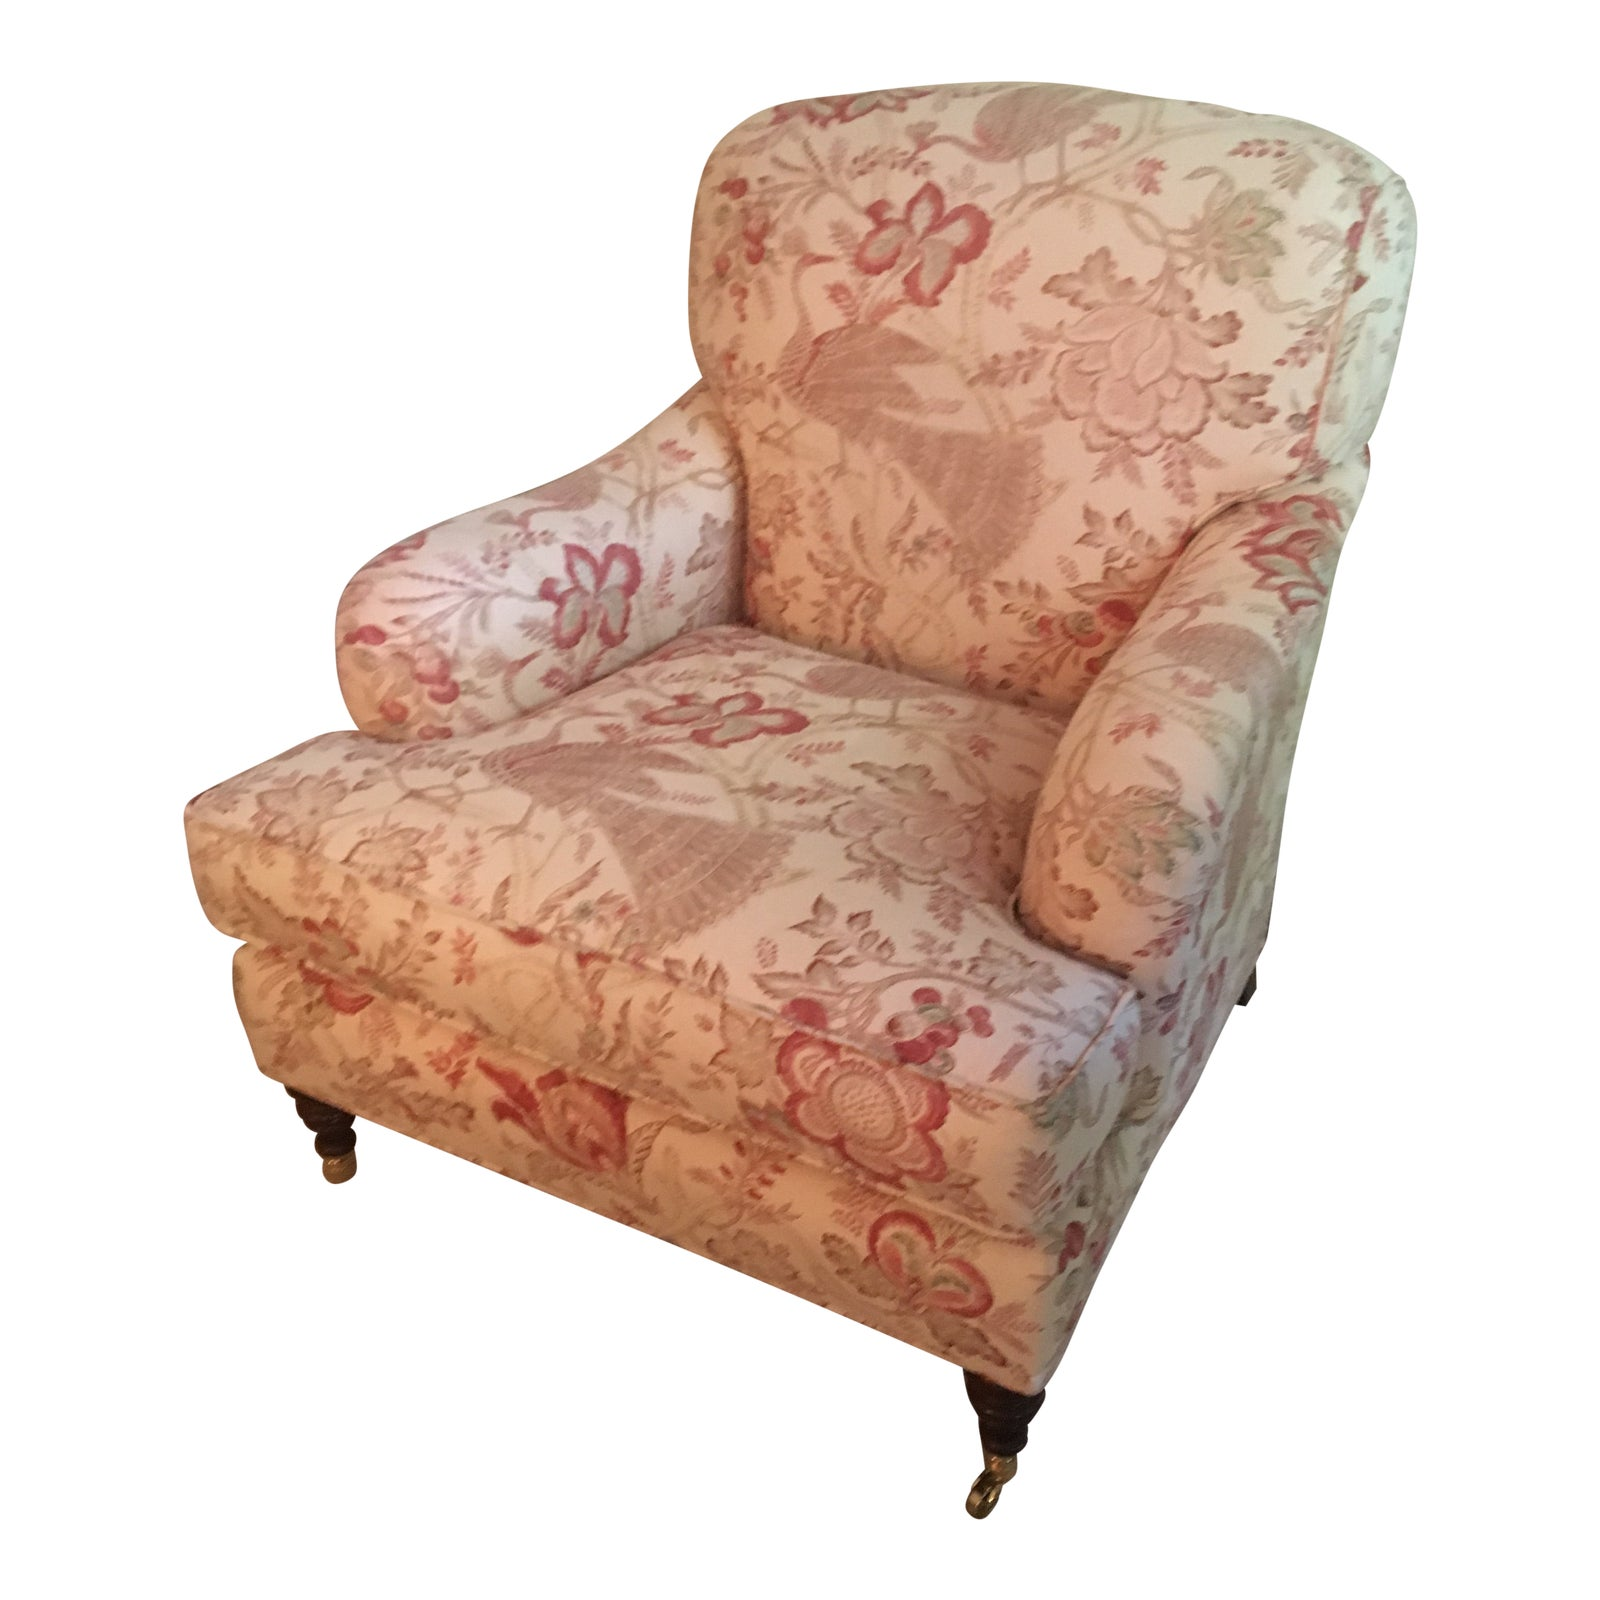 Swell Toile Club Accent Chair Gmtry Best Dining Table And Chair Ideas Images Gmtryco